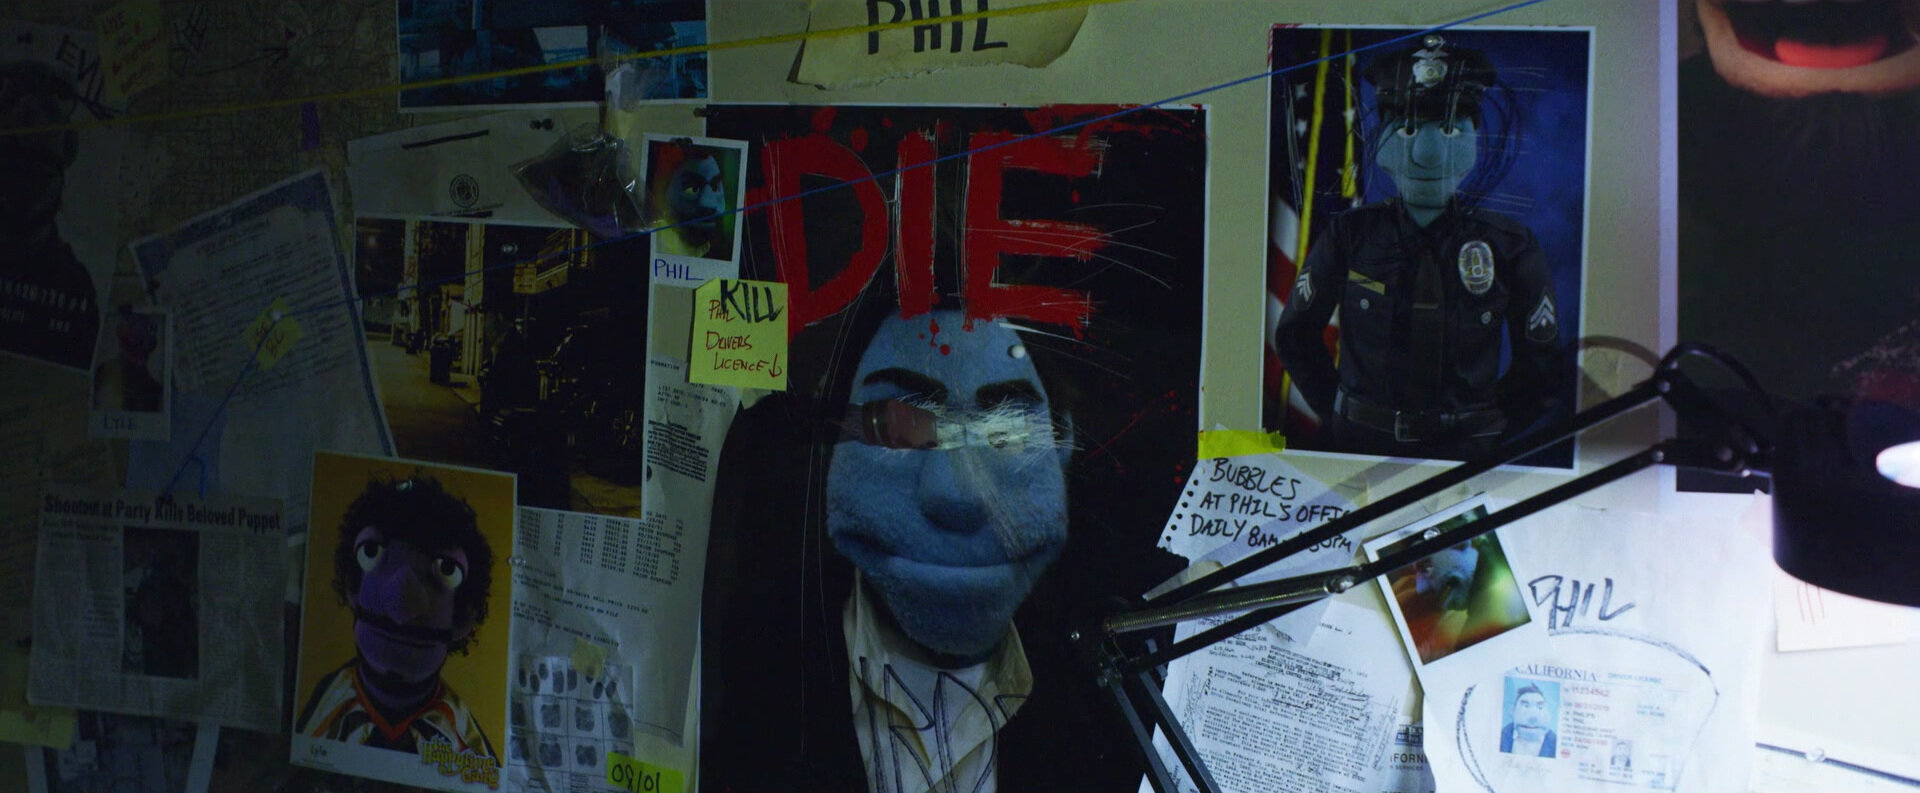 The Happytime Murders  (dir. Brian Henson, 2018)